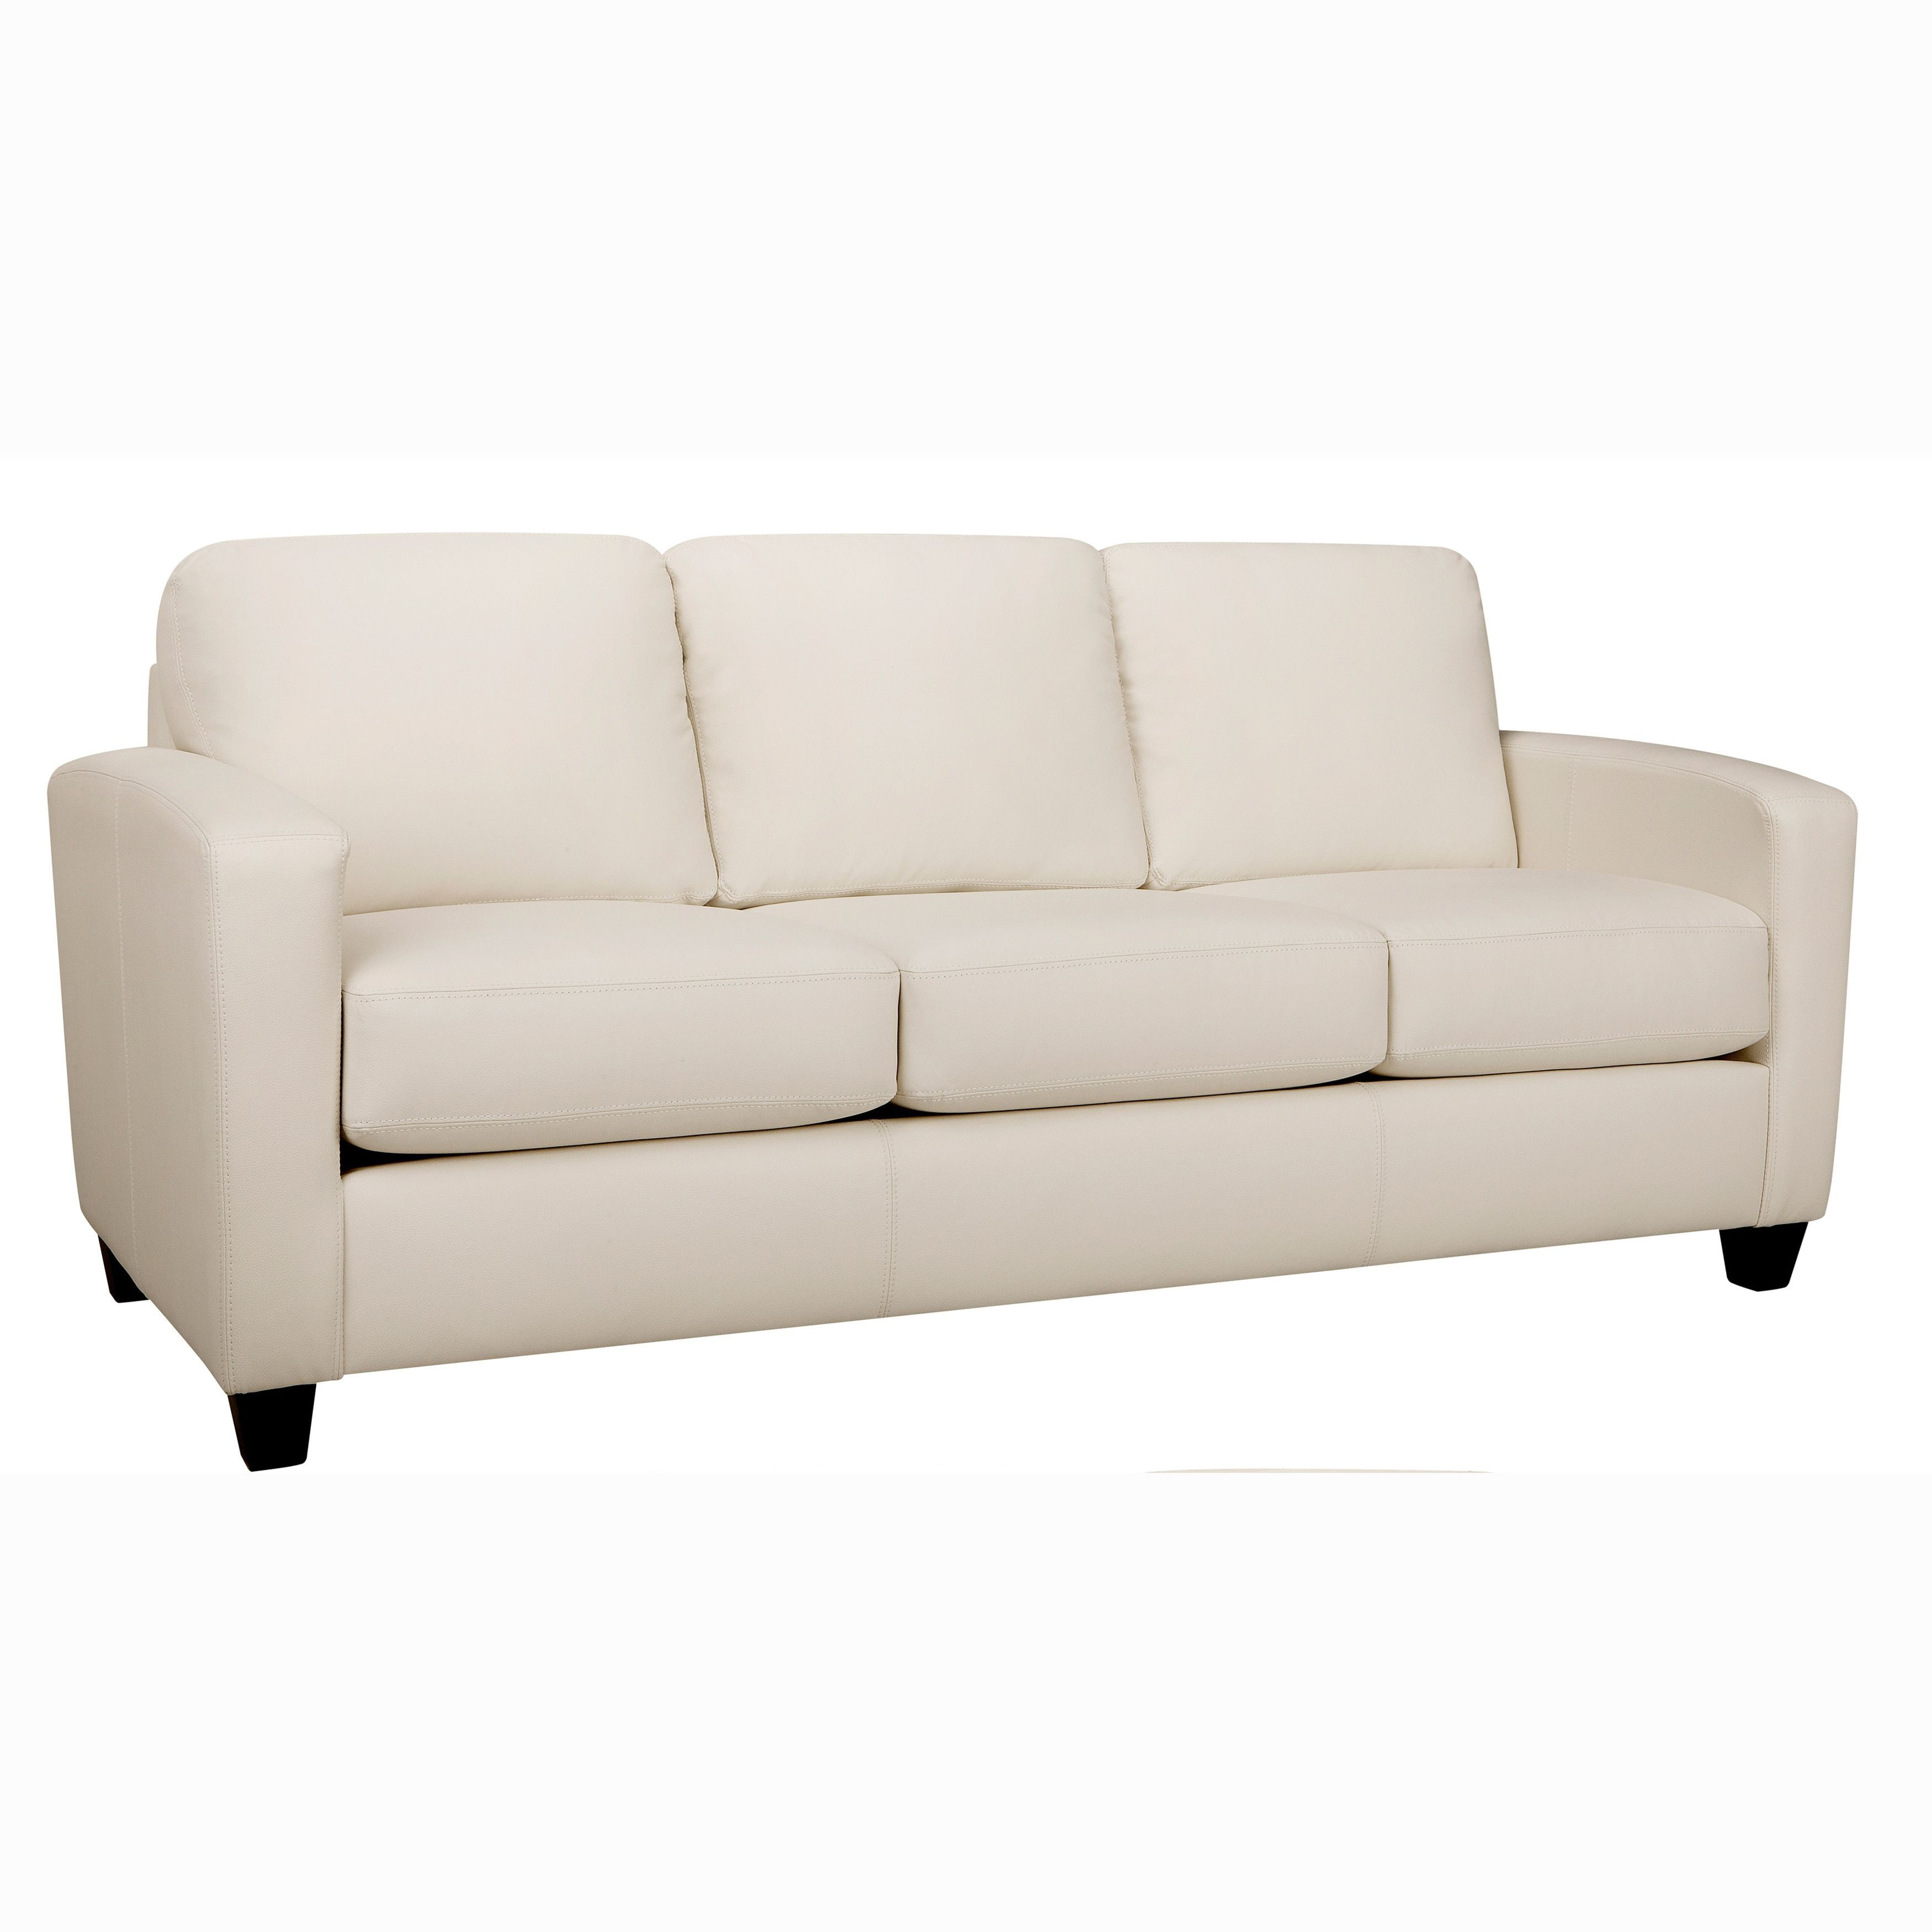 Bryce White Italian Top Grain Leather Sofa Ivory Leather Sofa